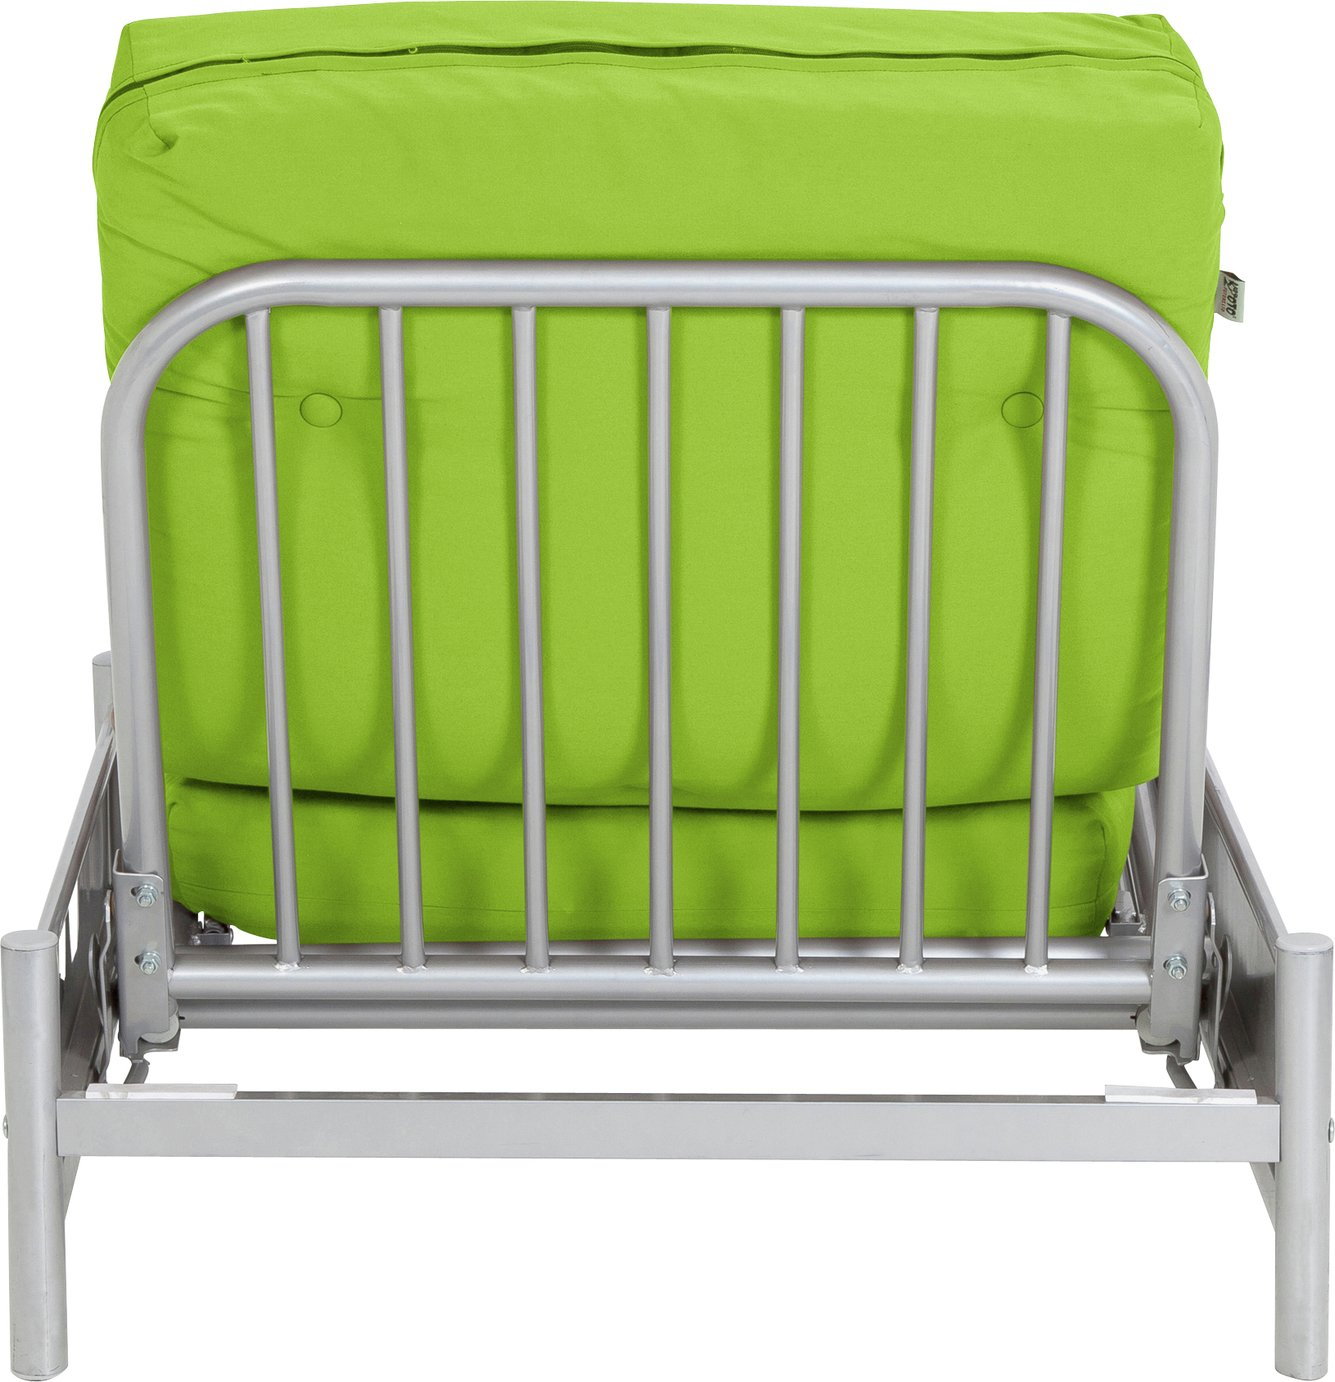 HOME Single Futon Metal Sofa Bed With Mattress   Green